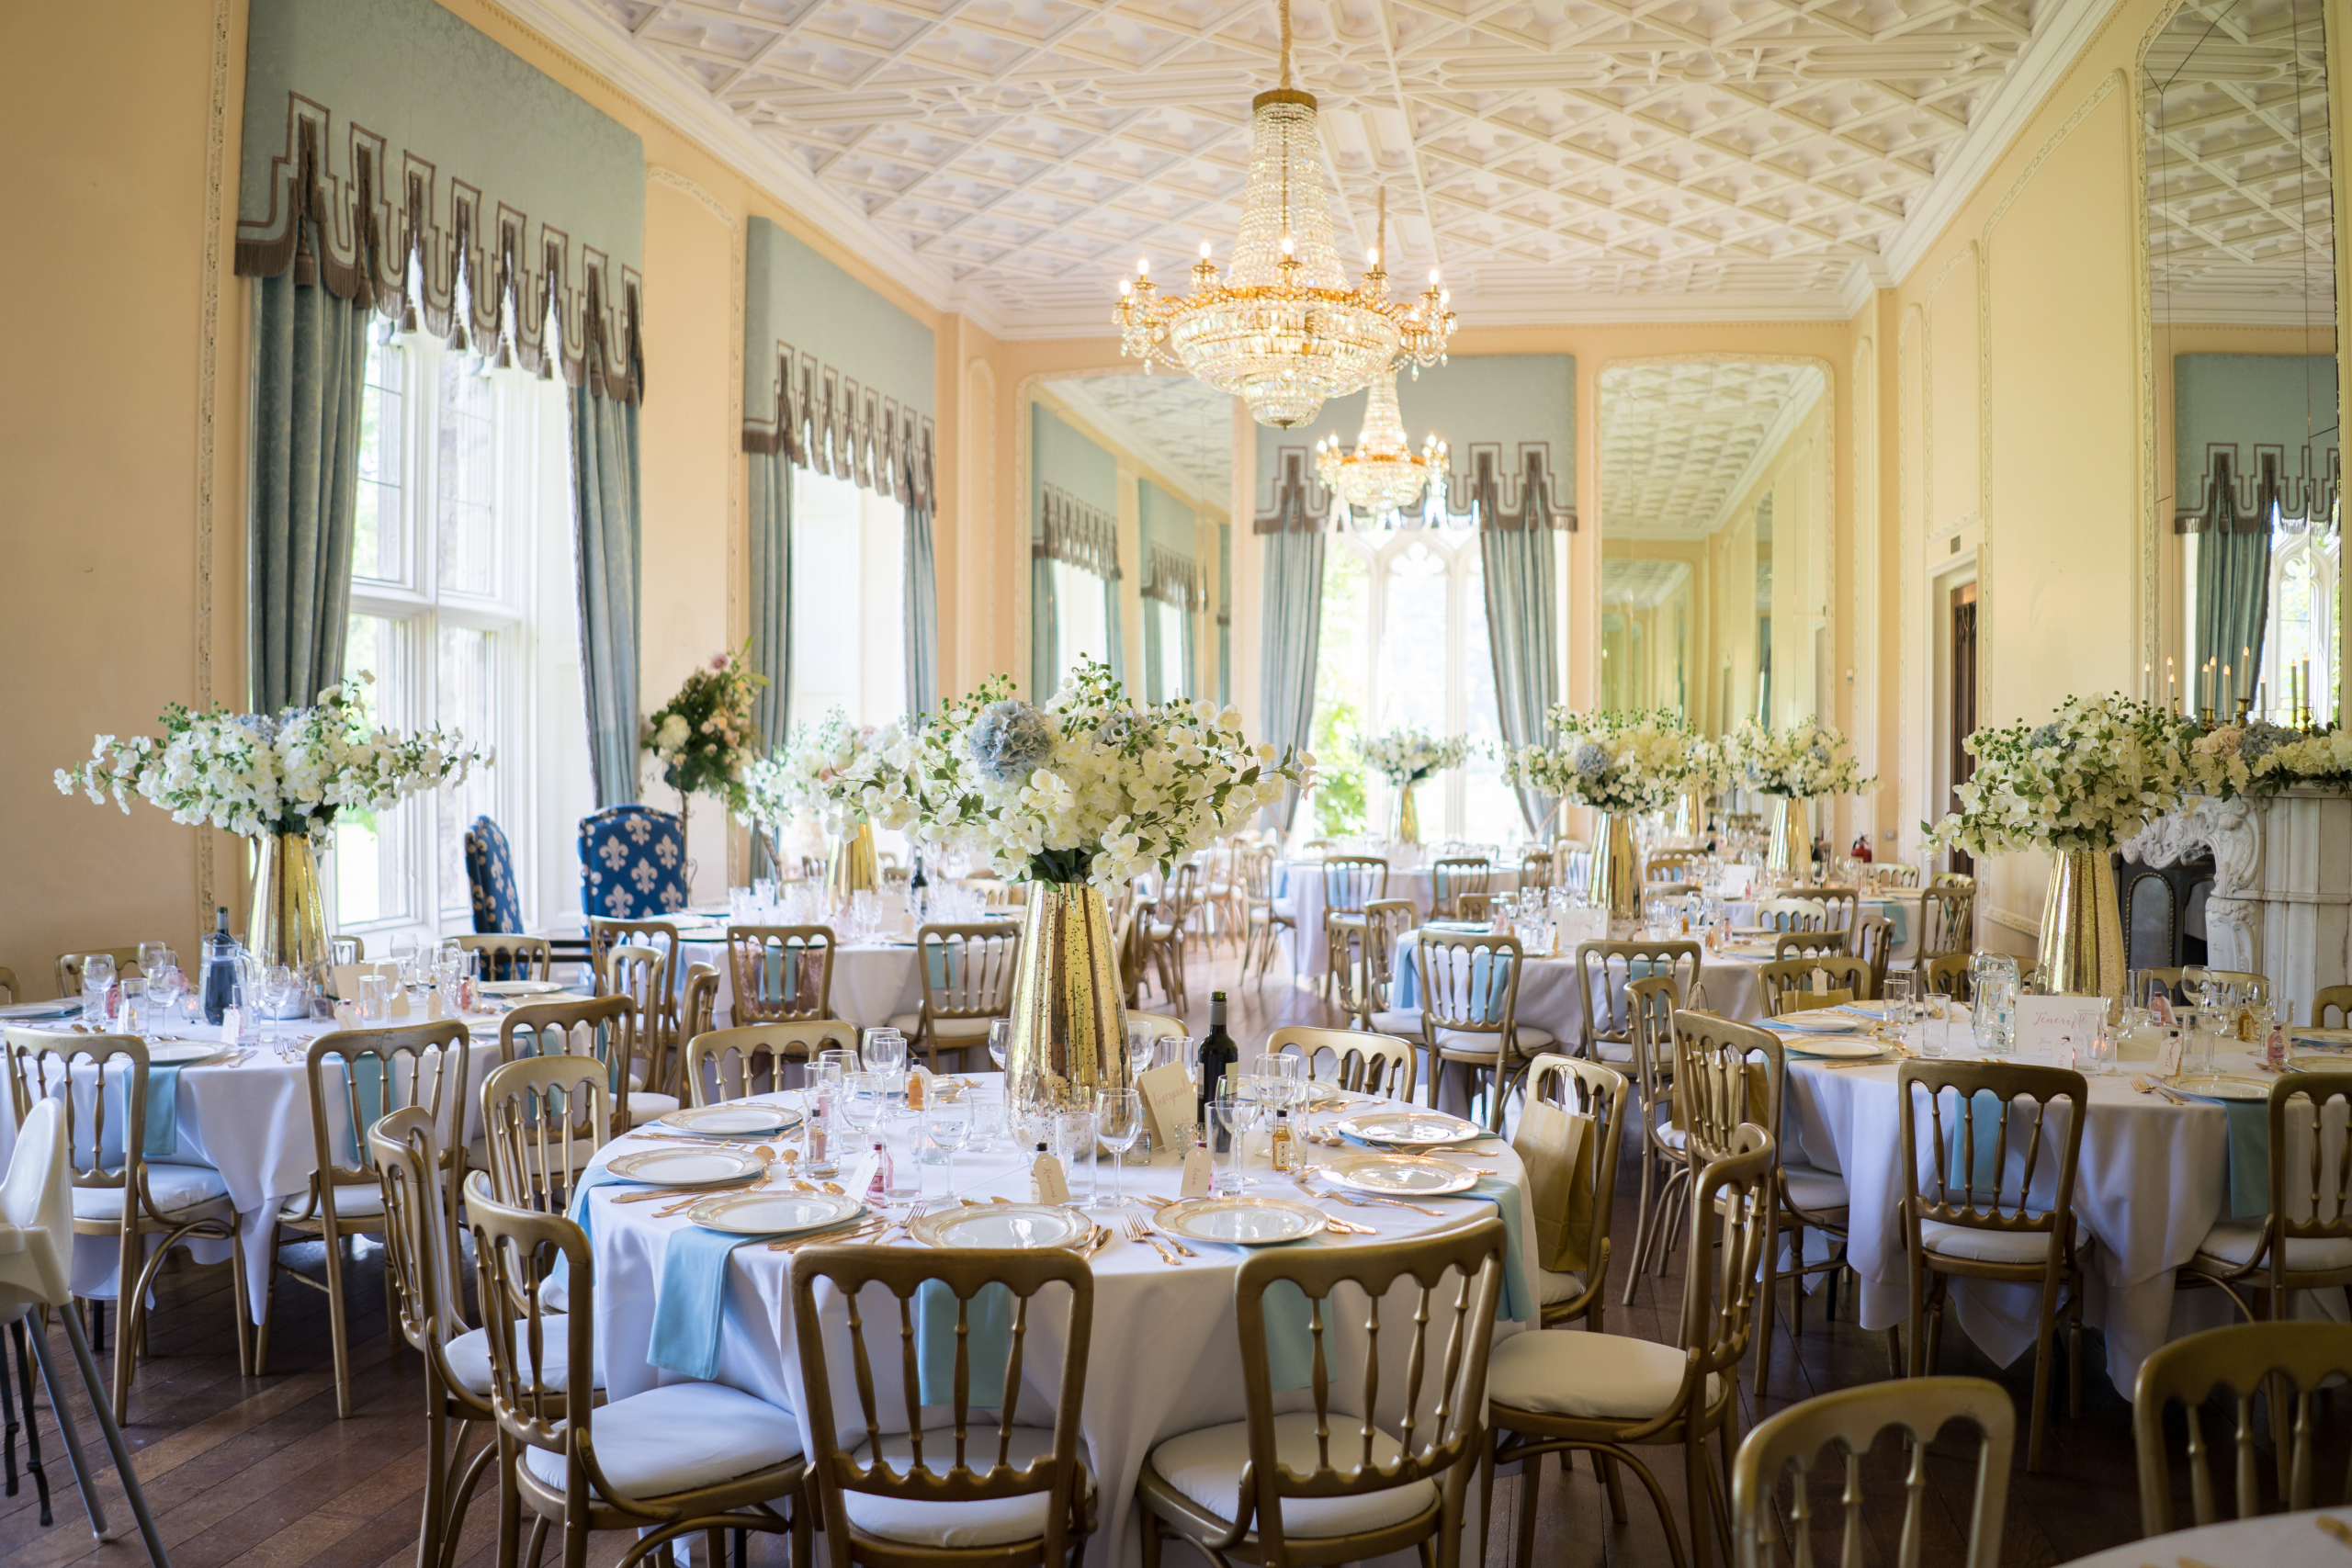 Ballroom with laid up tables and flowers